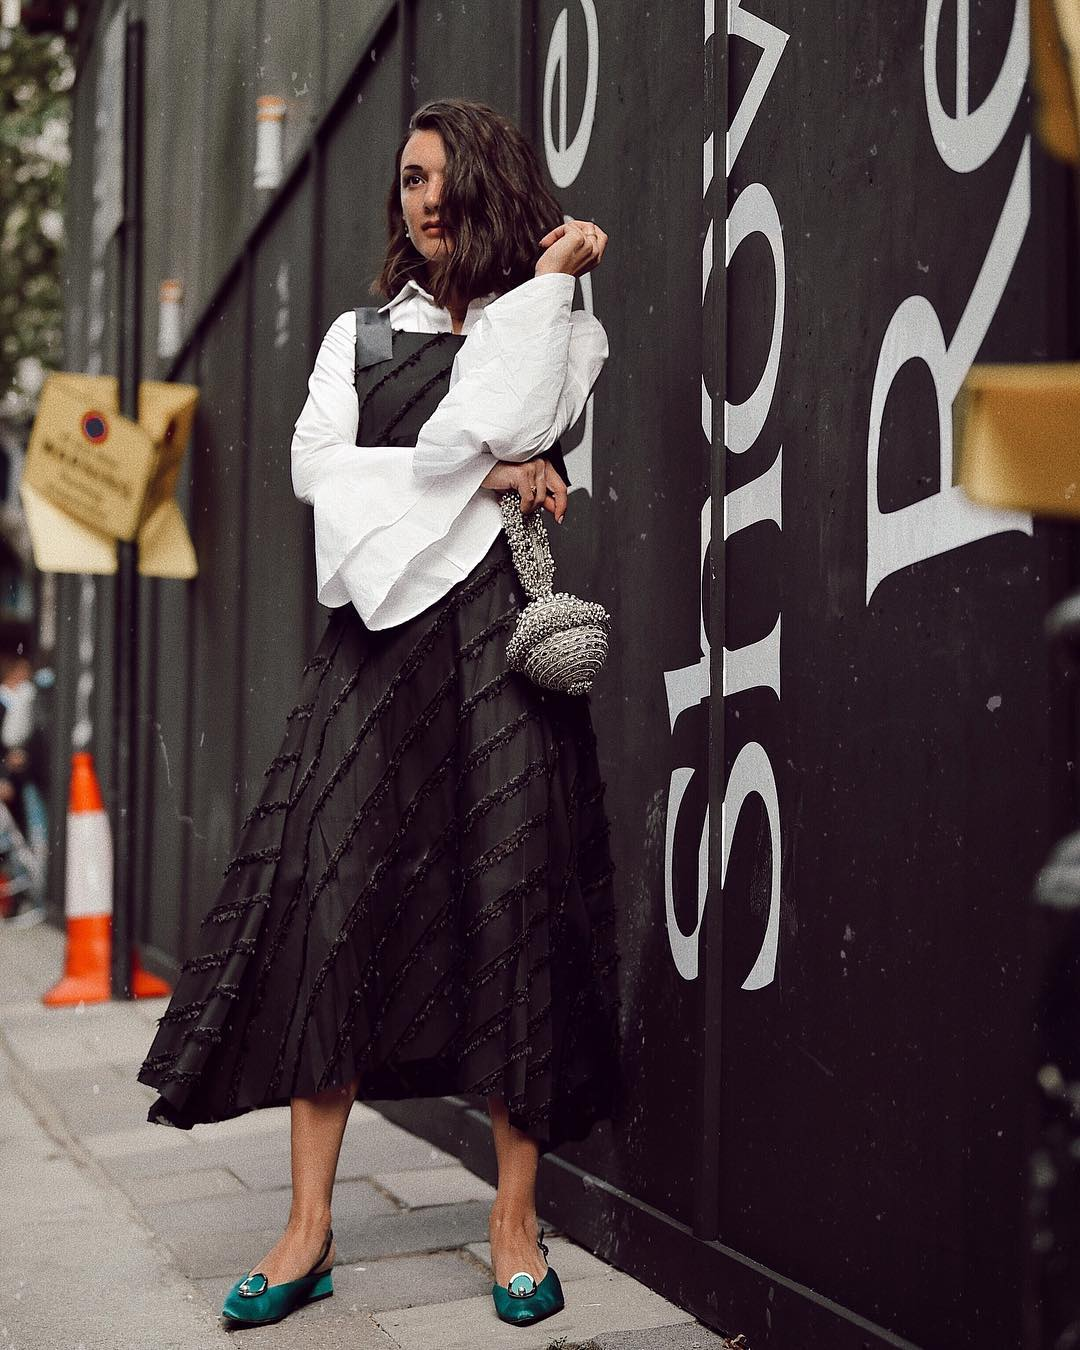 Fashion influencer Anisa Soijka spotted wearing the Simi Sparkle at London Fashion Week. MASHAMA dress and YUUL YIE shoes. Photo by David Nyanzi. silver clutch bag street style